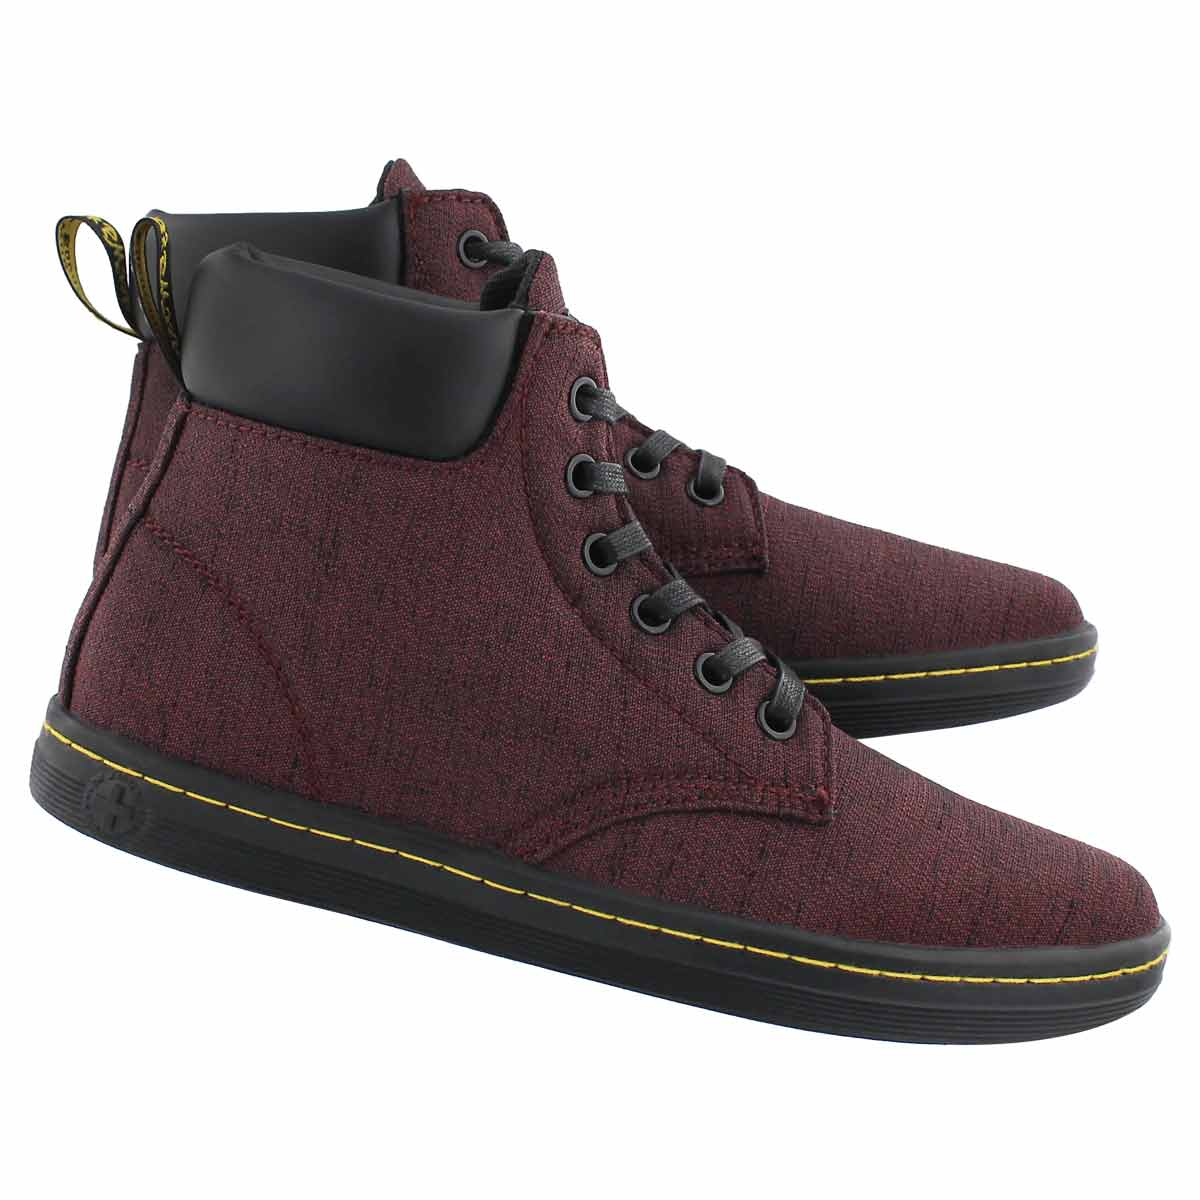 Lds Maelly 6 eye cherry ankle boot